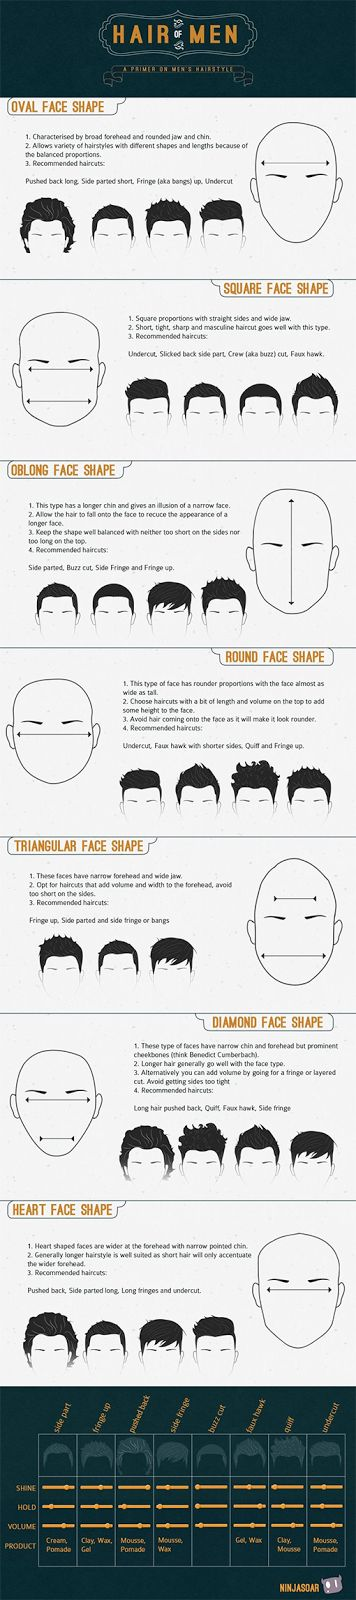 EDITOR'S GUIDE: Hair-styling Tips for Men this 2015 with a Cool Info-graph